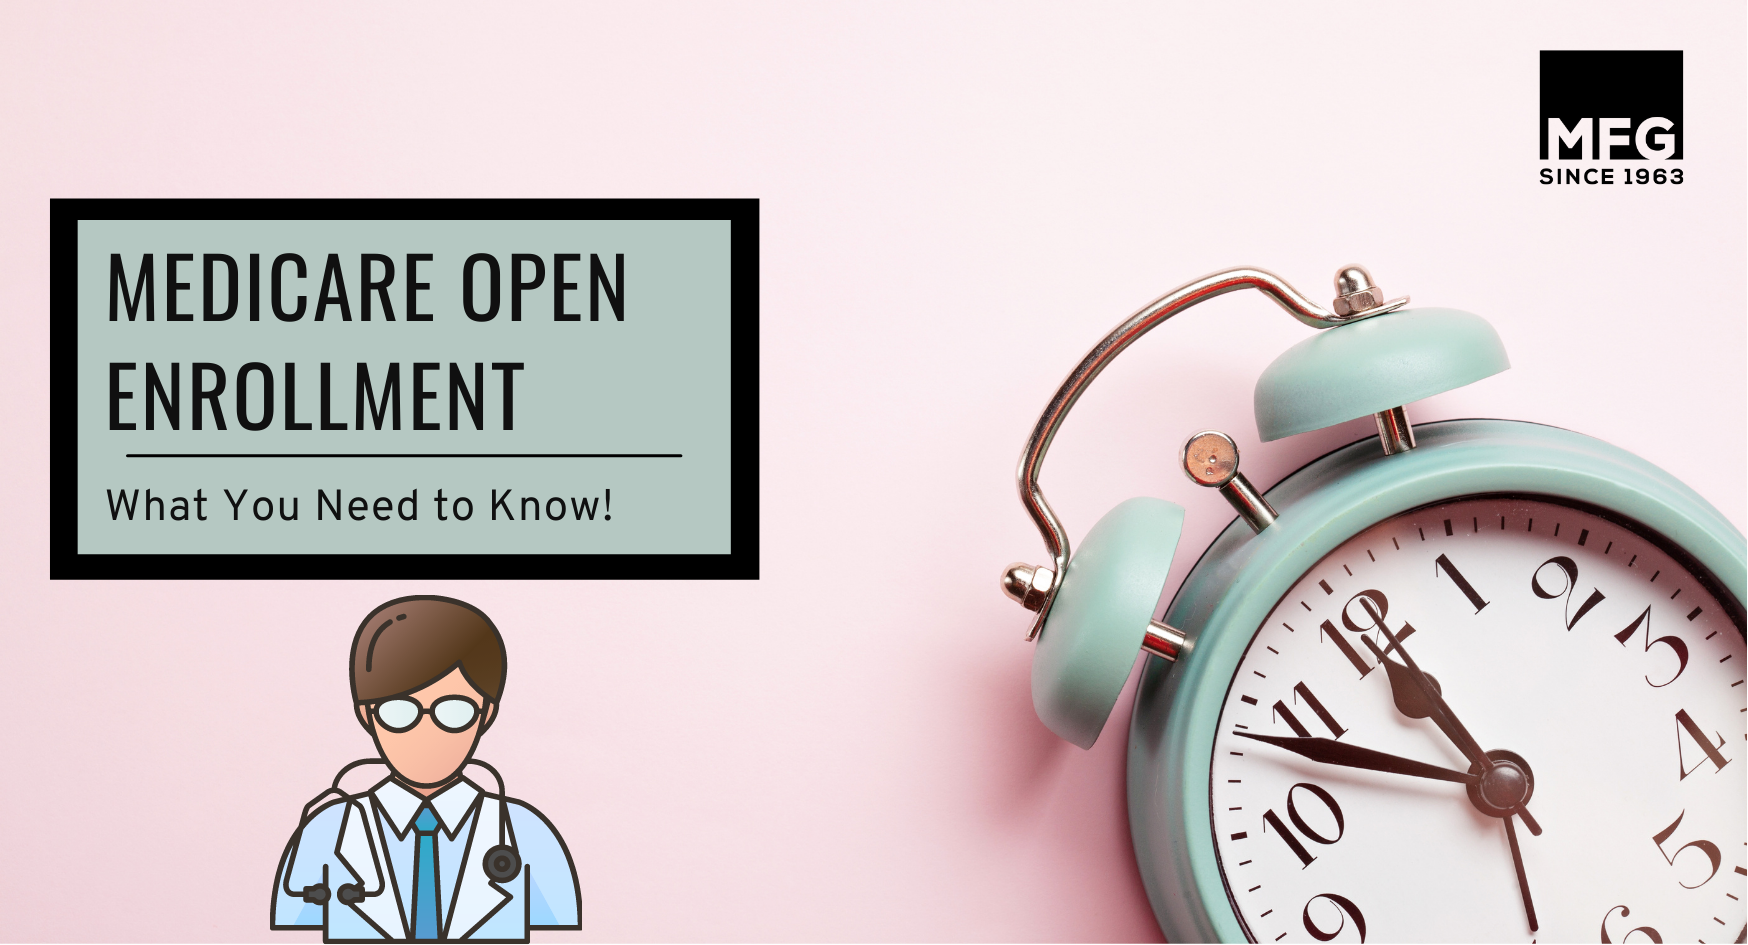 Medicare Open Enrollment Begins October 15th. What Does that Mean for Me? Thumbnail